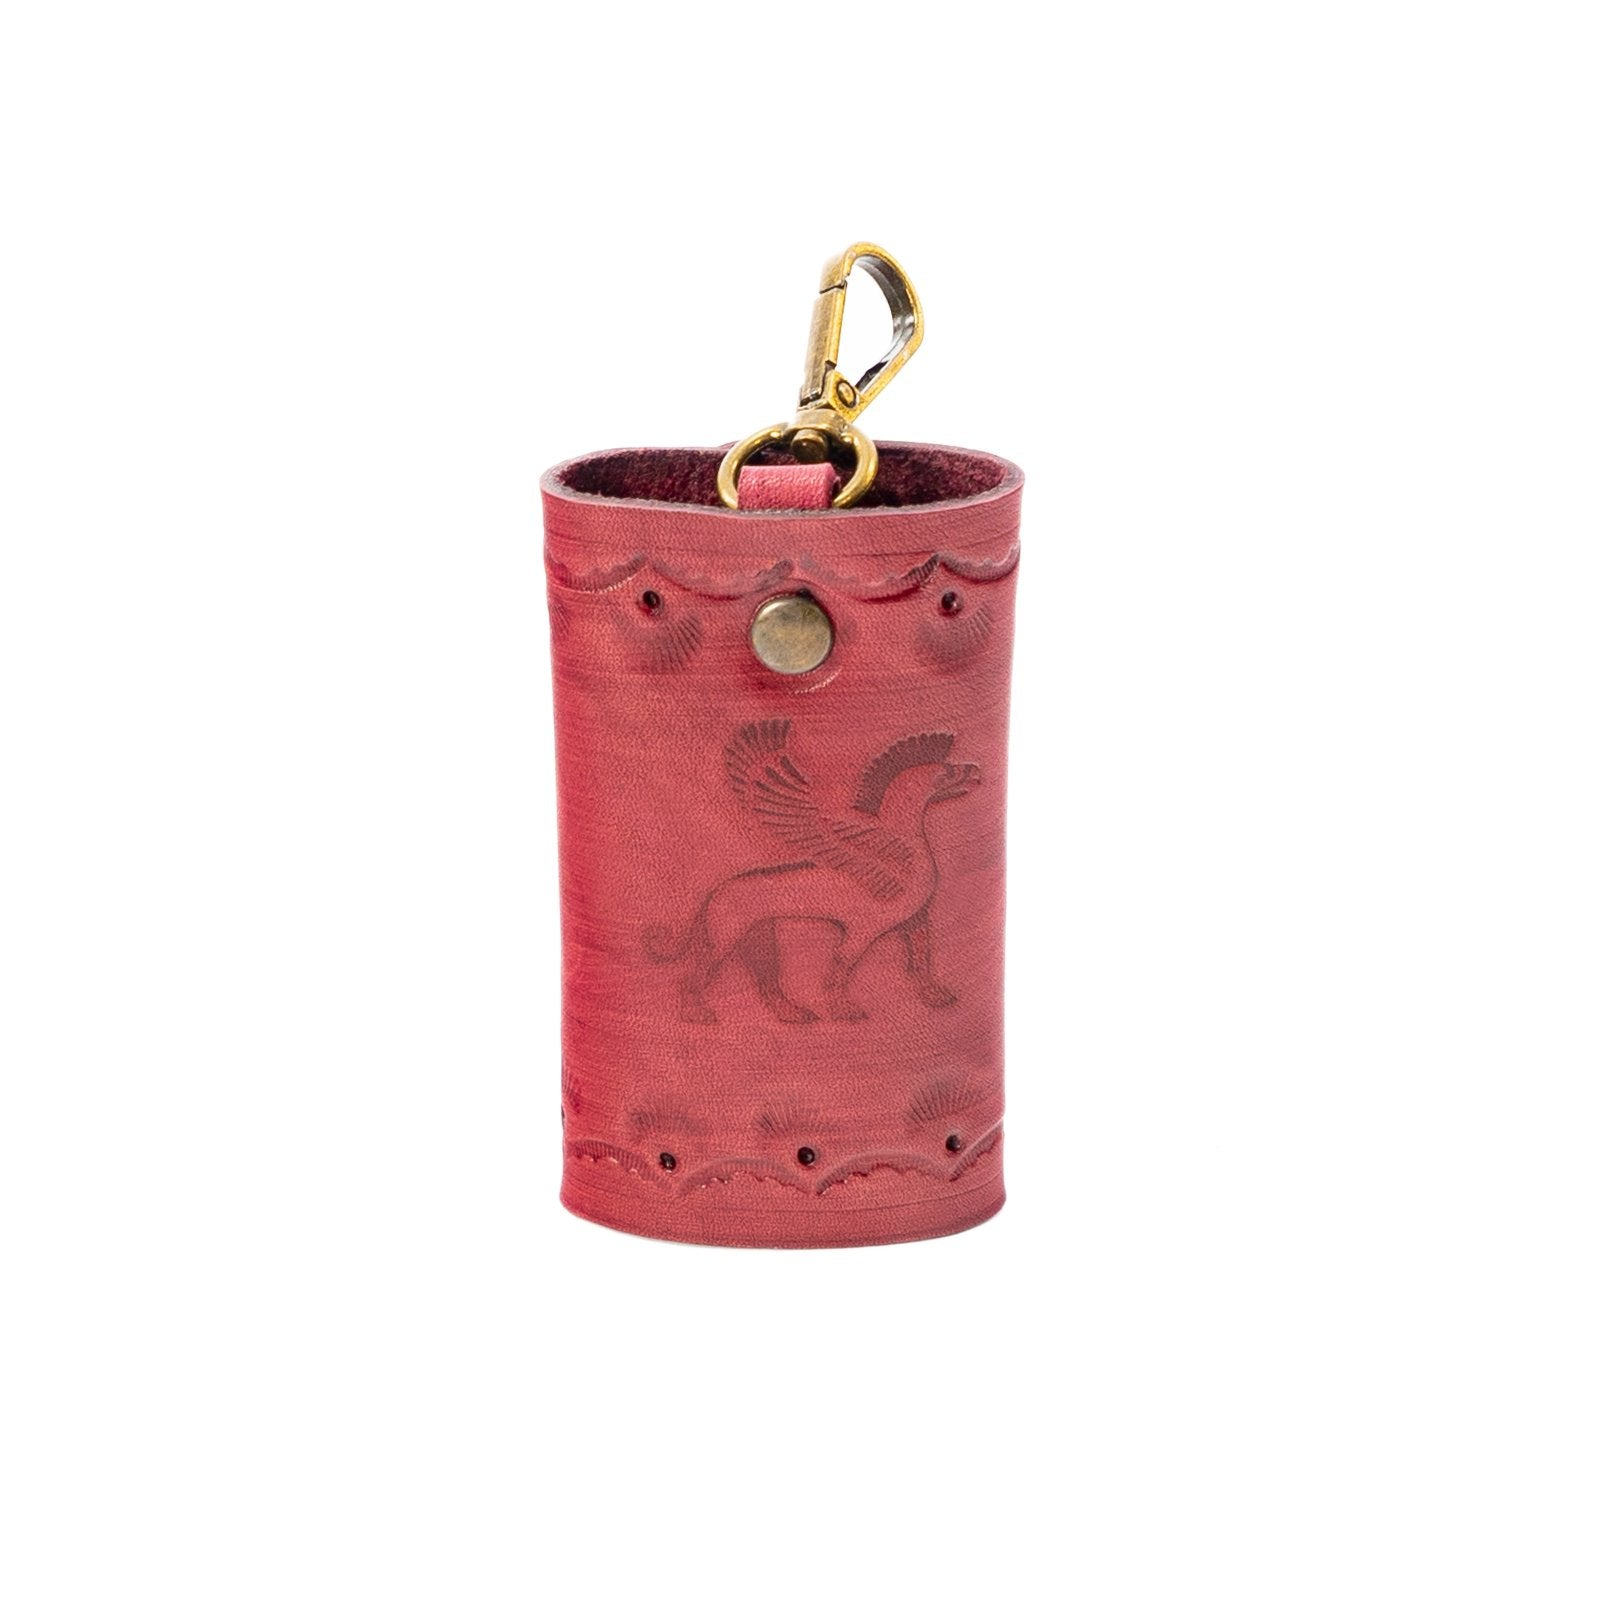 Derifix Ortella Red Handmade Leather Keyholder